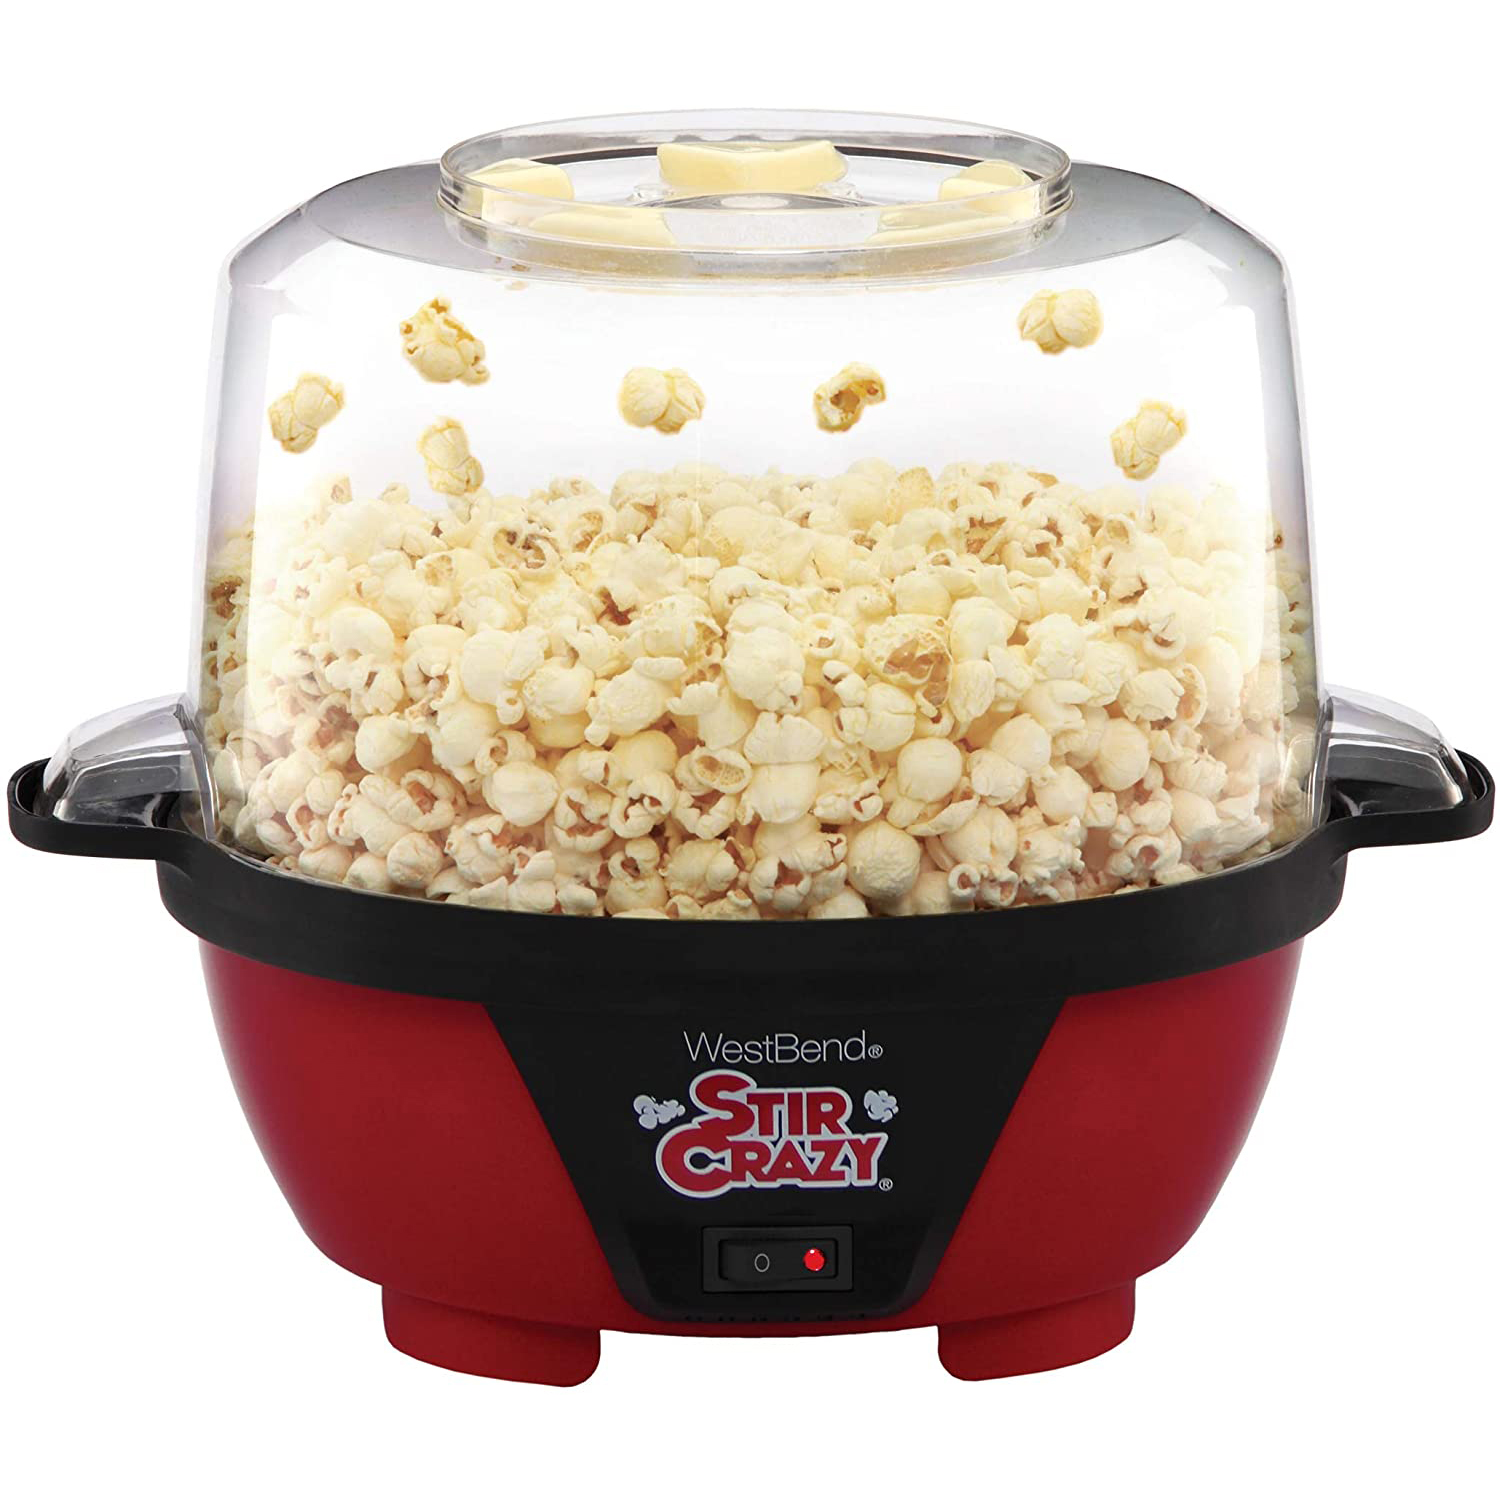 West Bend Stir Crazy Electric Hot Oil Popcorn Popper with a white background